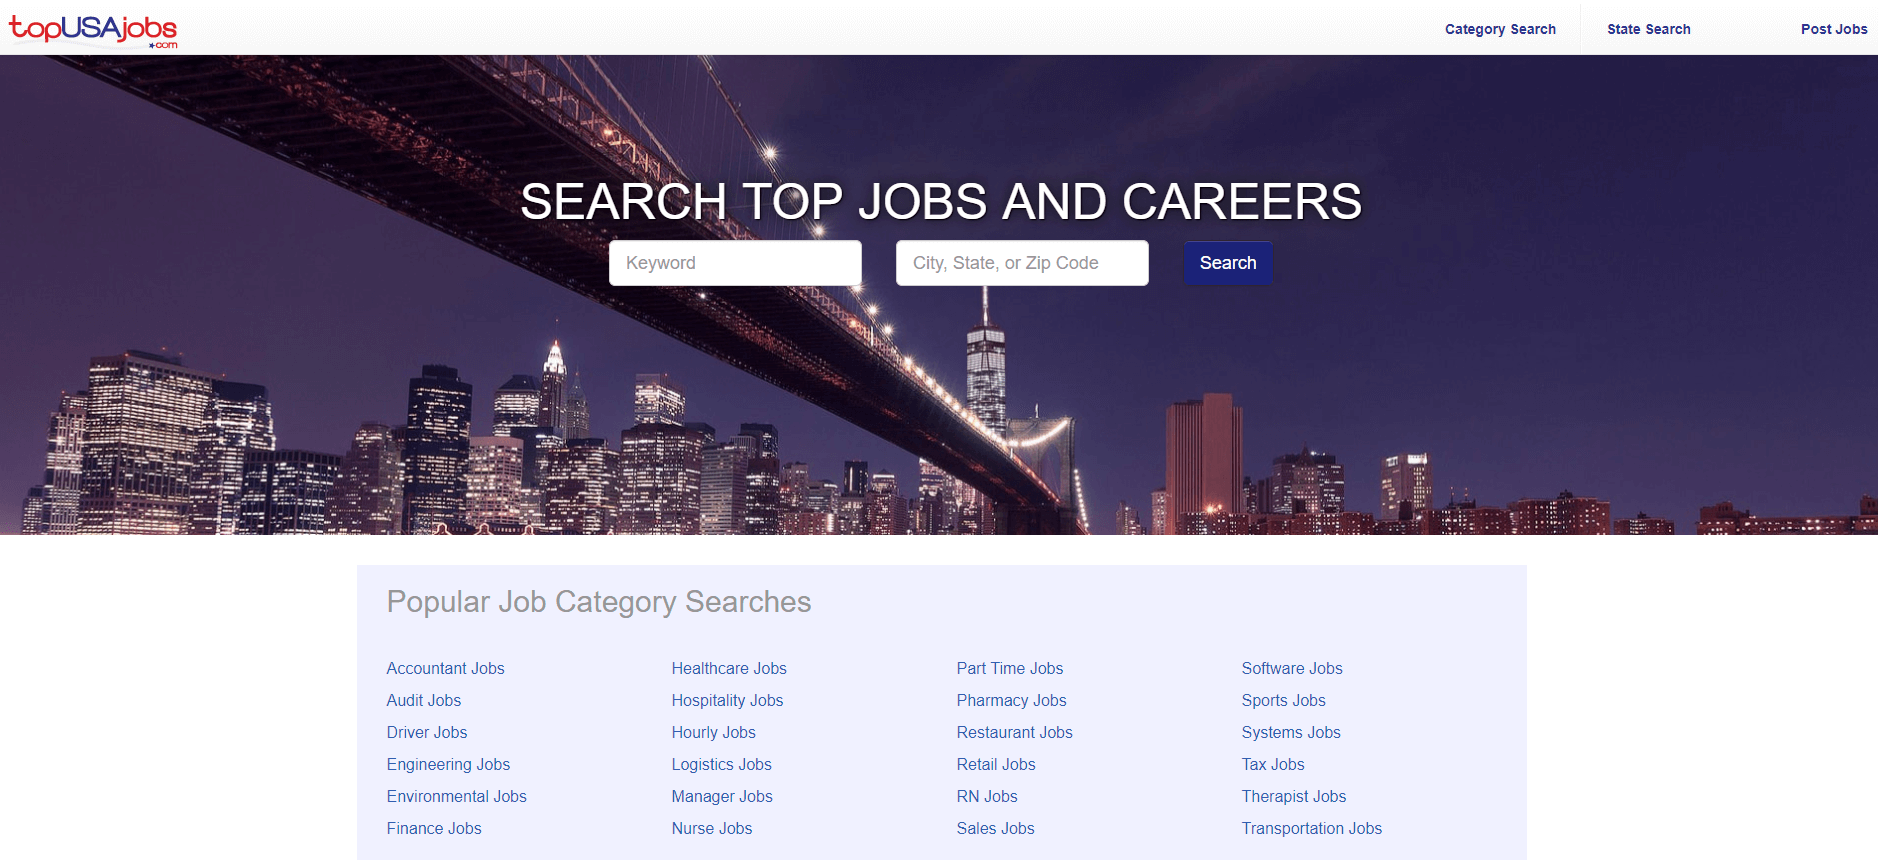 Click to go to topUSAjobs.com